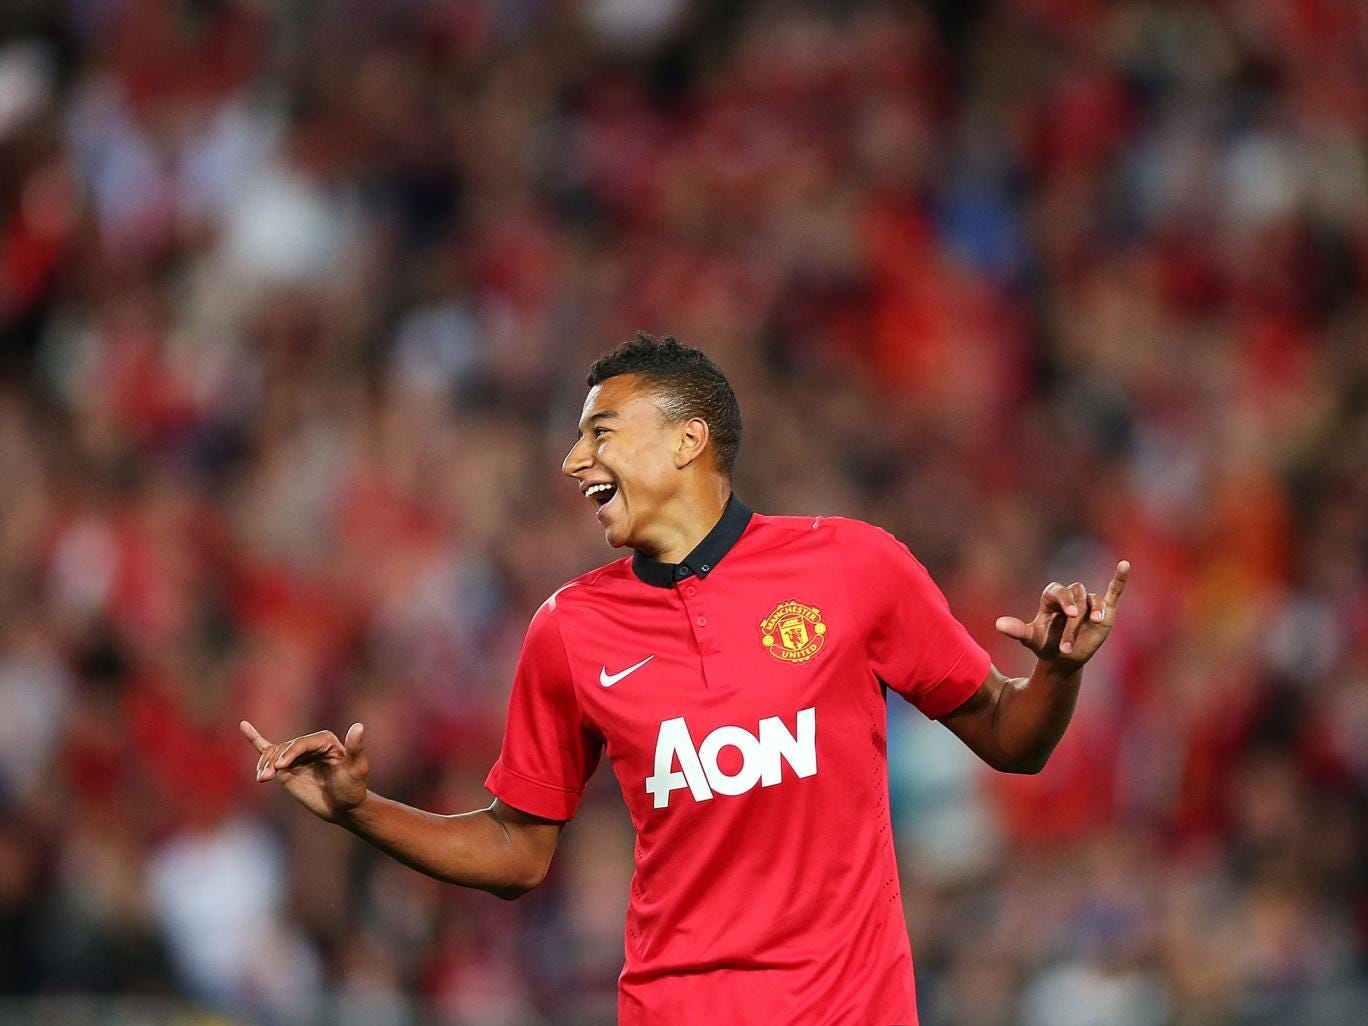 Jesse Lingard in action of Manchester United's pre-season tour